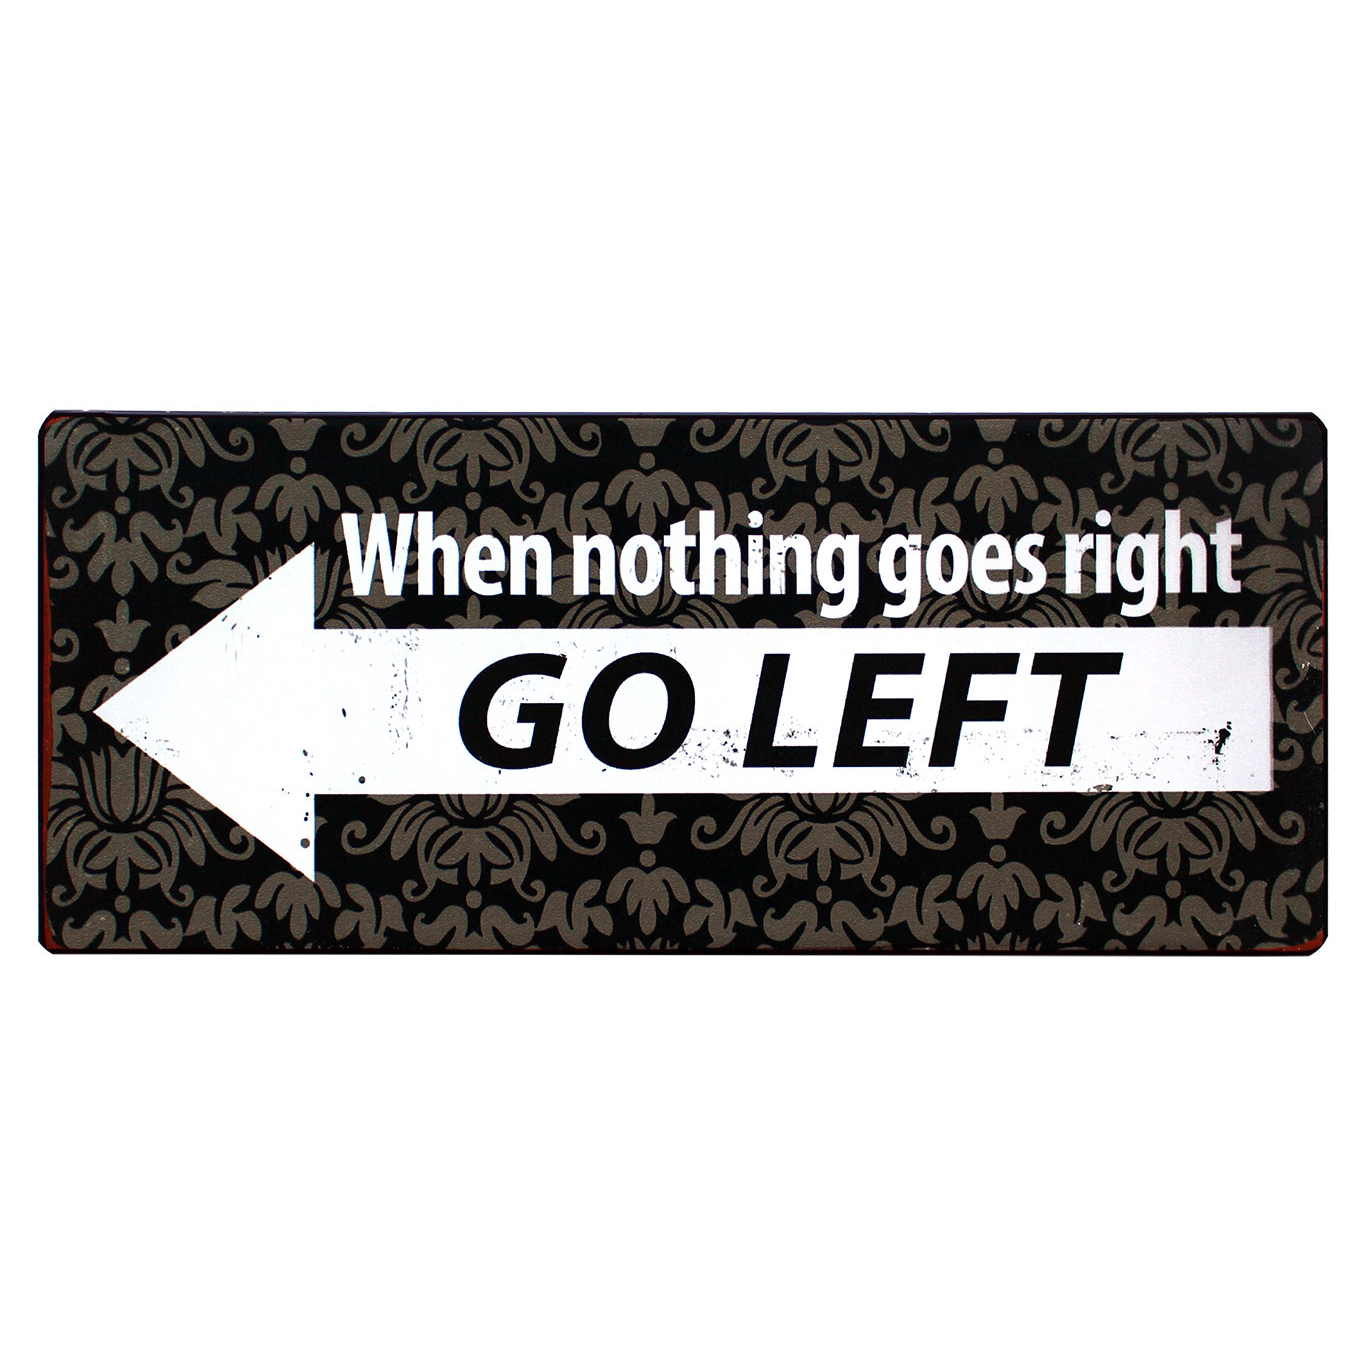 em3790-when-nothing-goes-right-go-left-rustiek-tekst-bord-cadeau-kado-online-metaal-deco-decoratie v